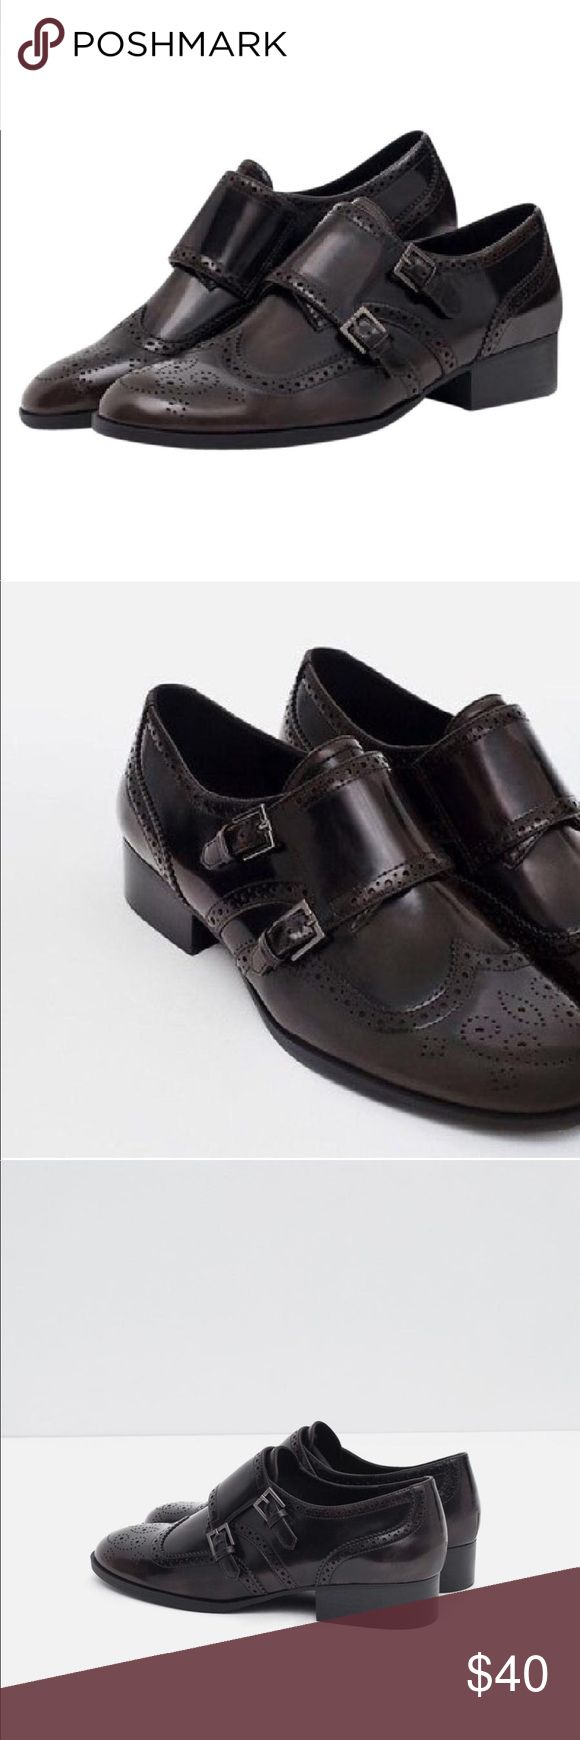 Zara Brown Monkstrap Oxford Loafers Size 8 Zara woman Loafers with brogue Detail. Like new condition. Great paired with cropped jeans white button down and a chunky sweater!! Perfect for those fall days!! 🍂🍁 Zara Shoes